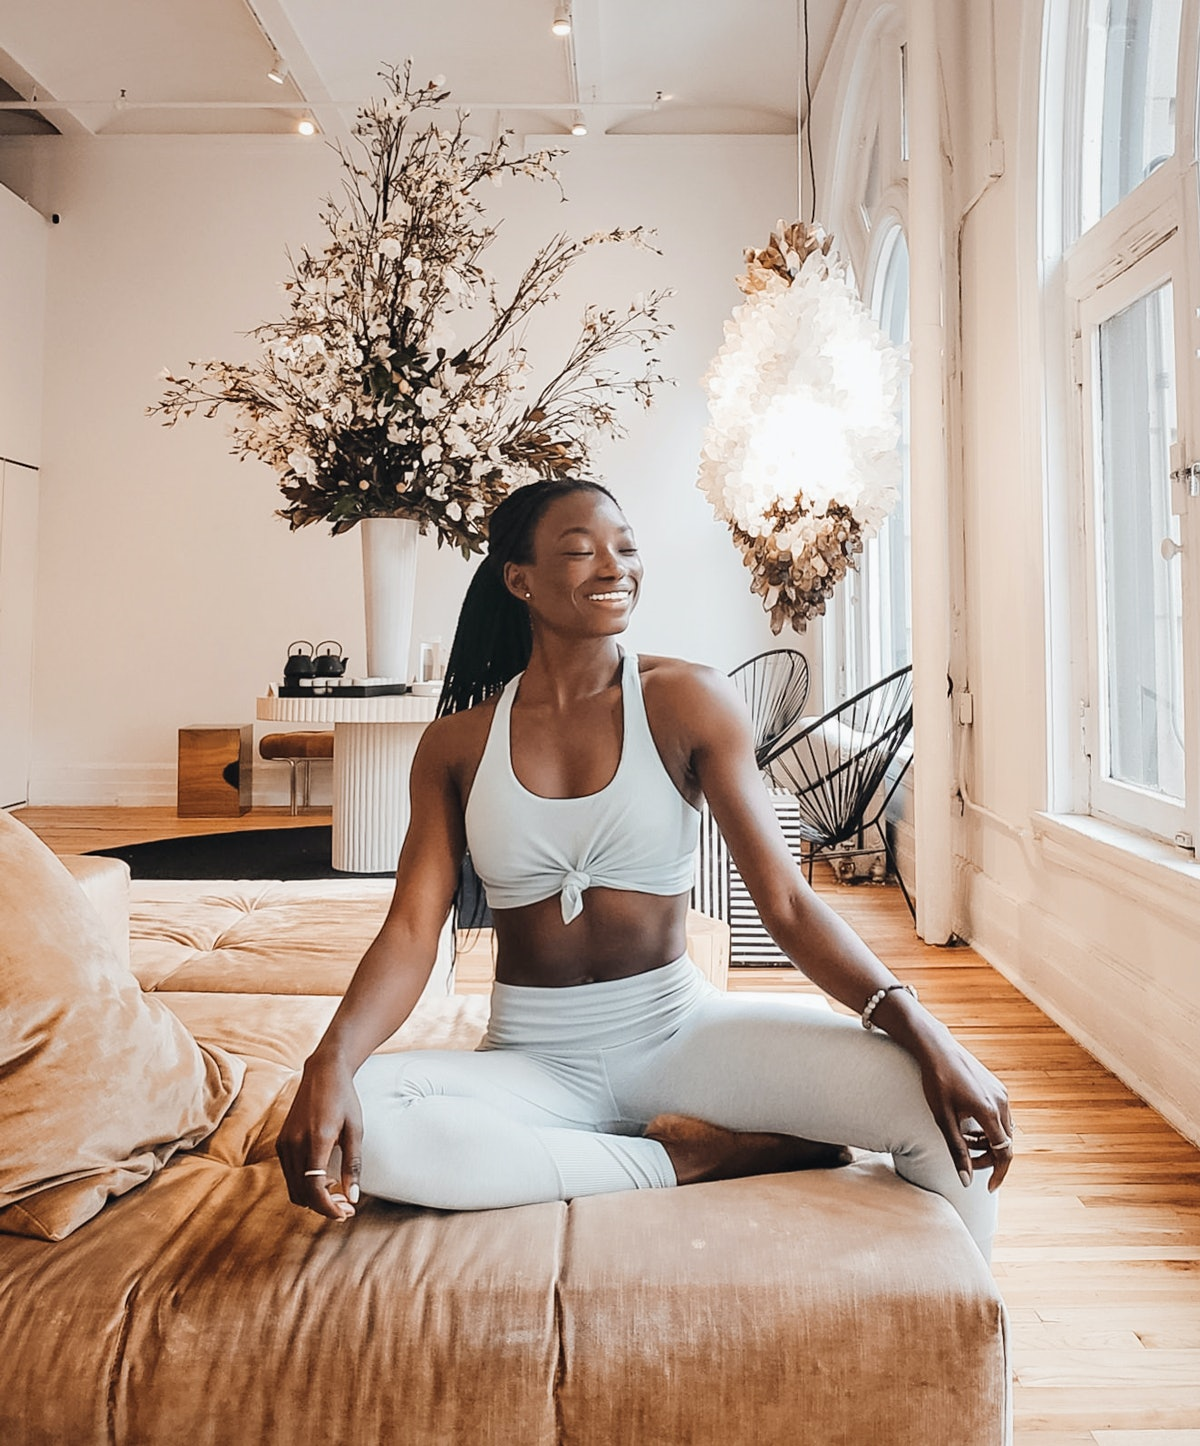 A woman in white yoga apparel smiles and sits on a brown couch in a bright room.